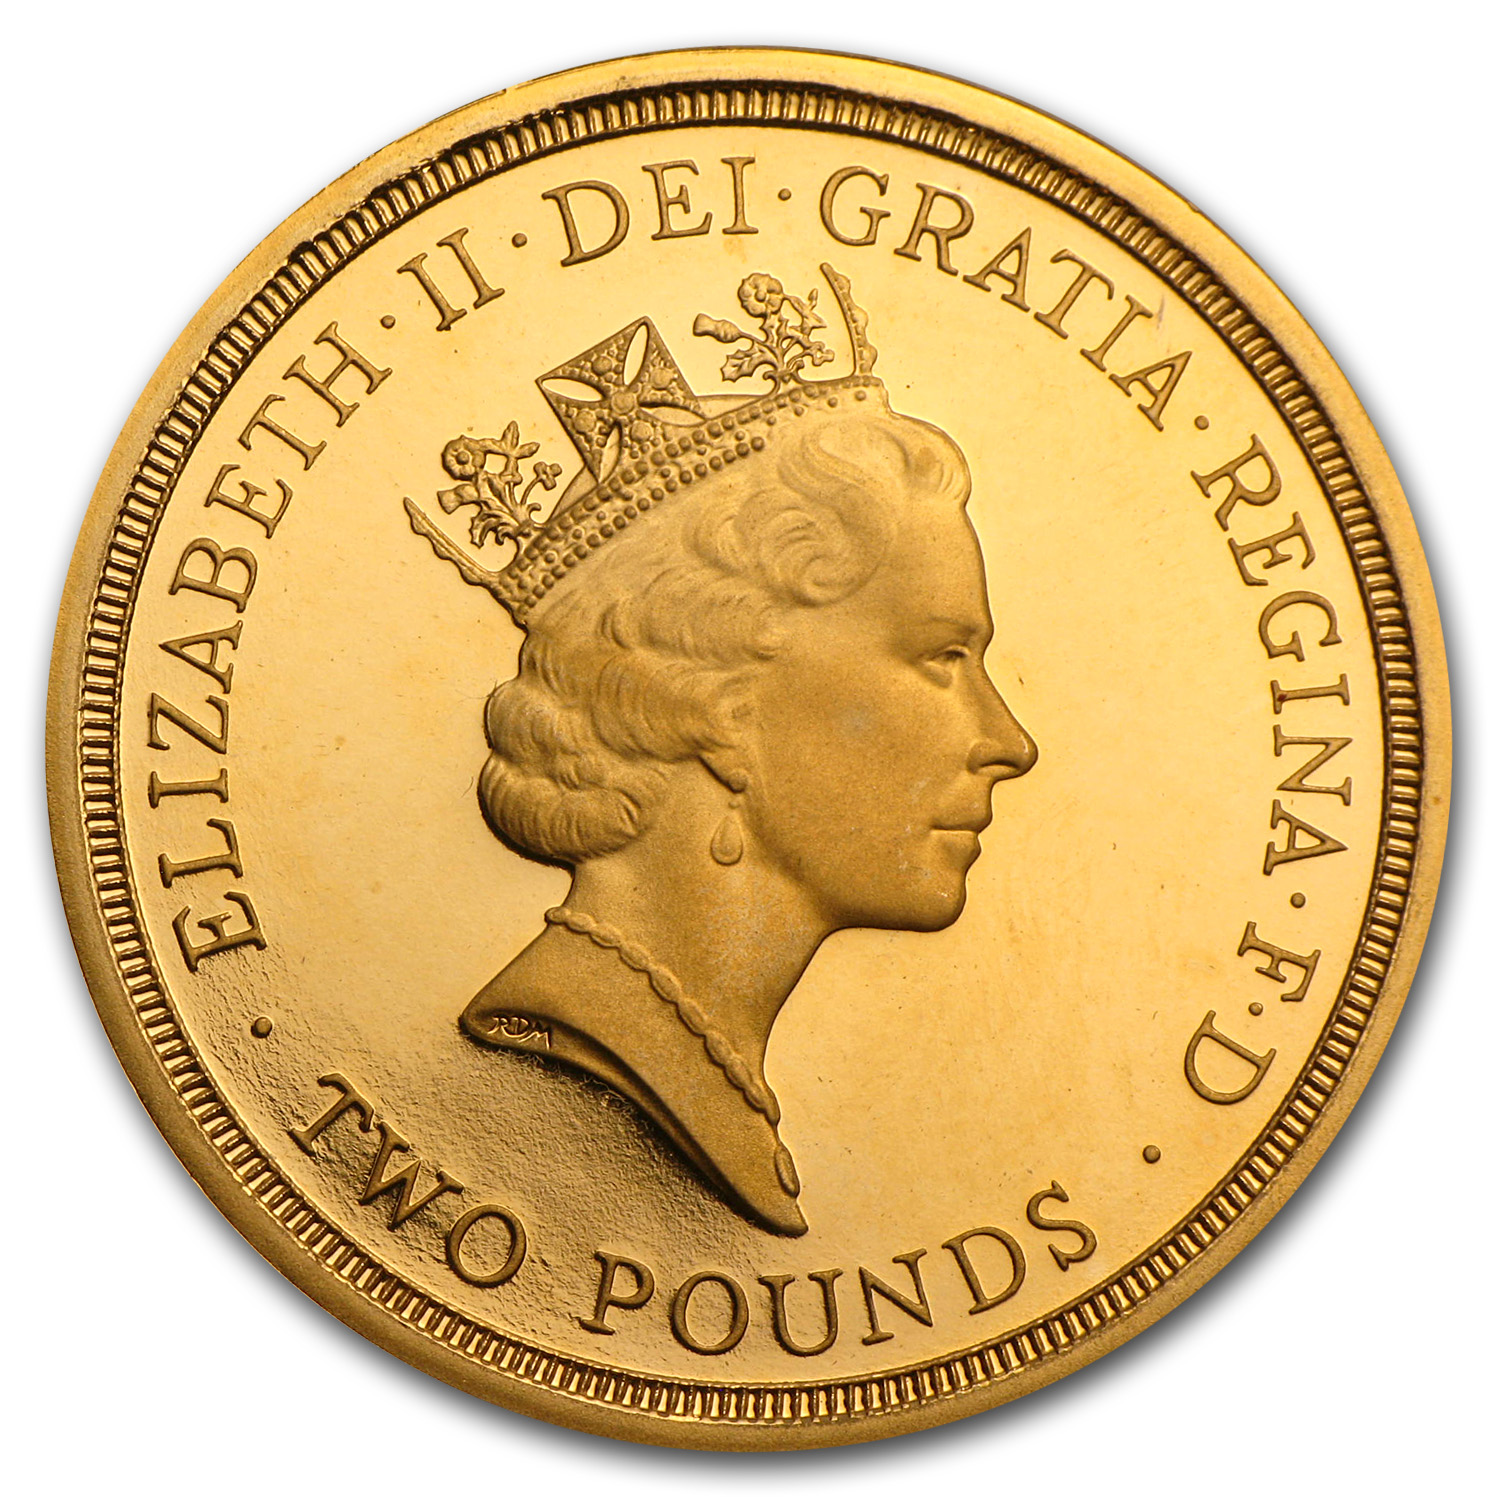 1995 Great Britain Proof Gold £2 WWII